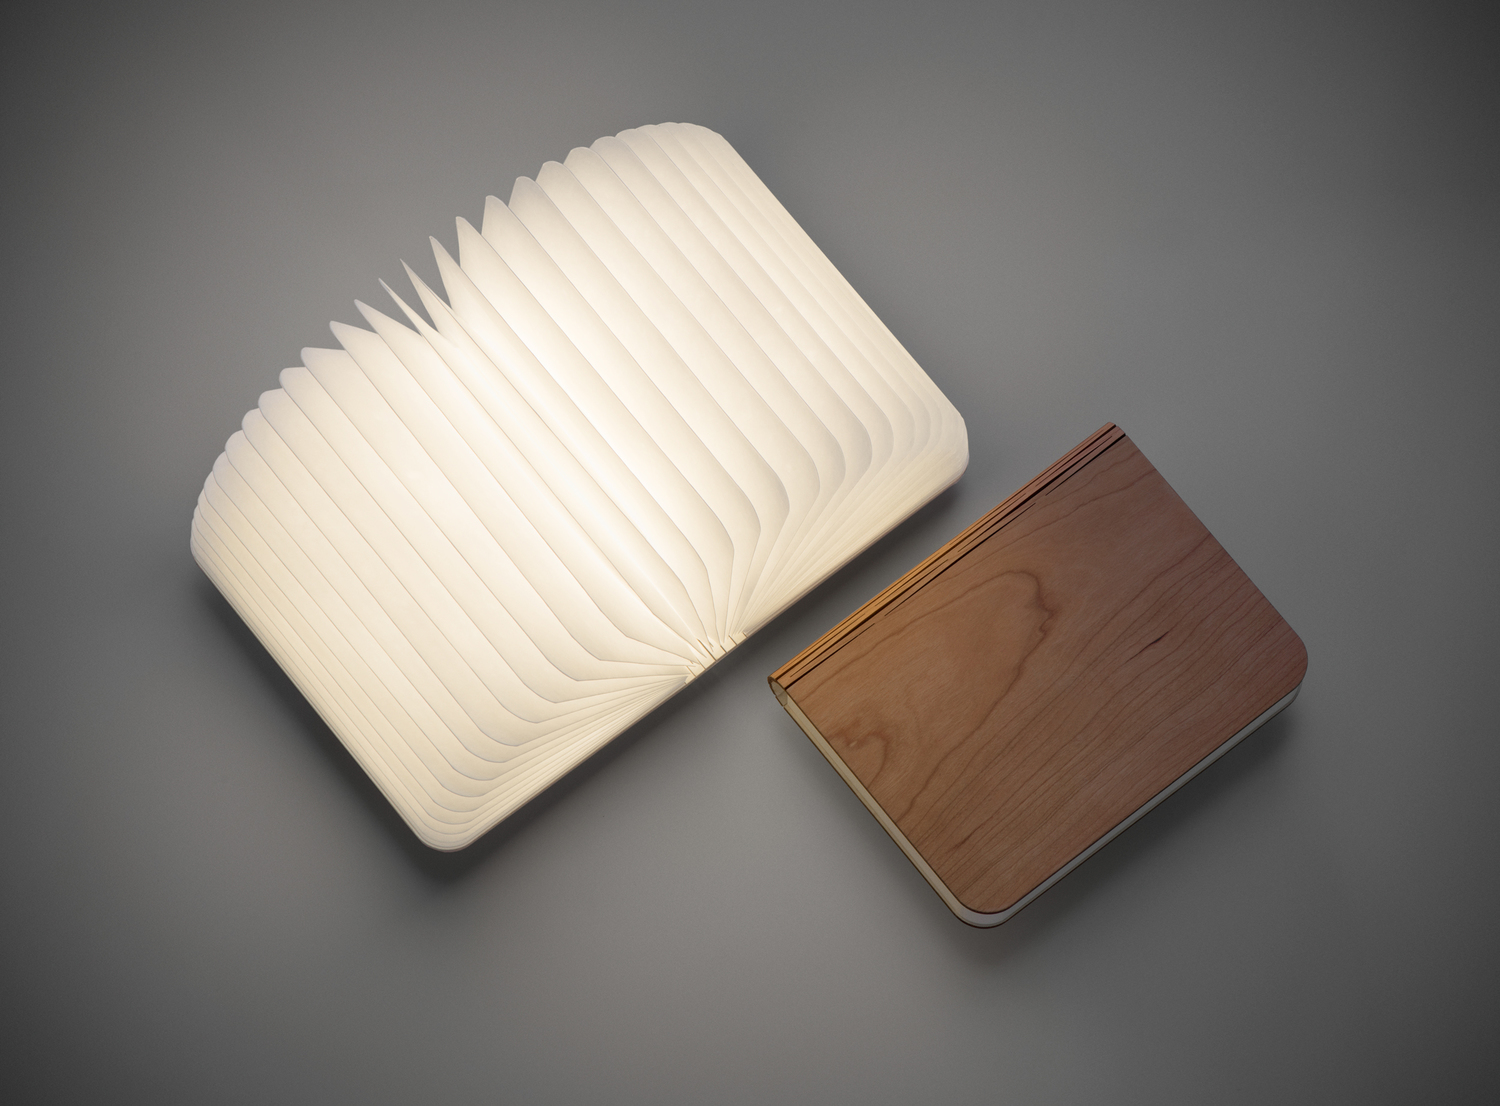 Lumio The Folding Book Lamp